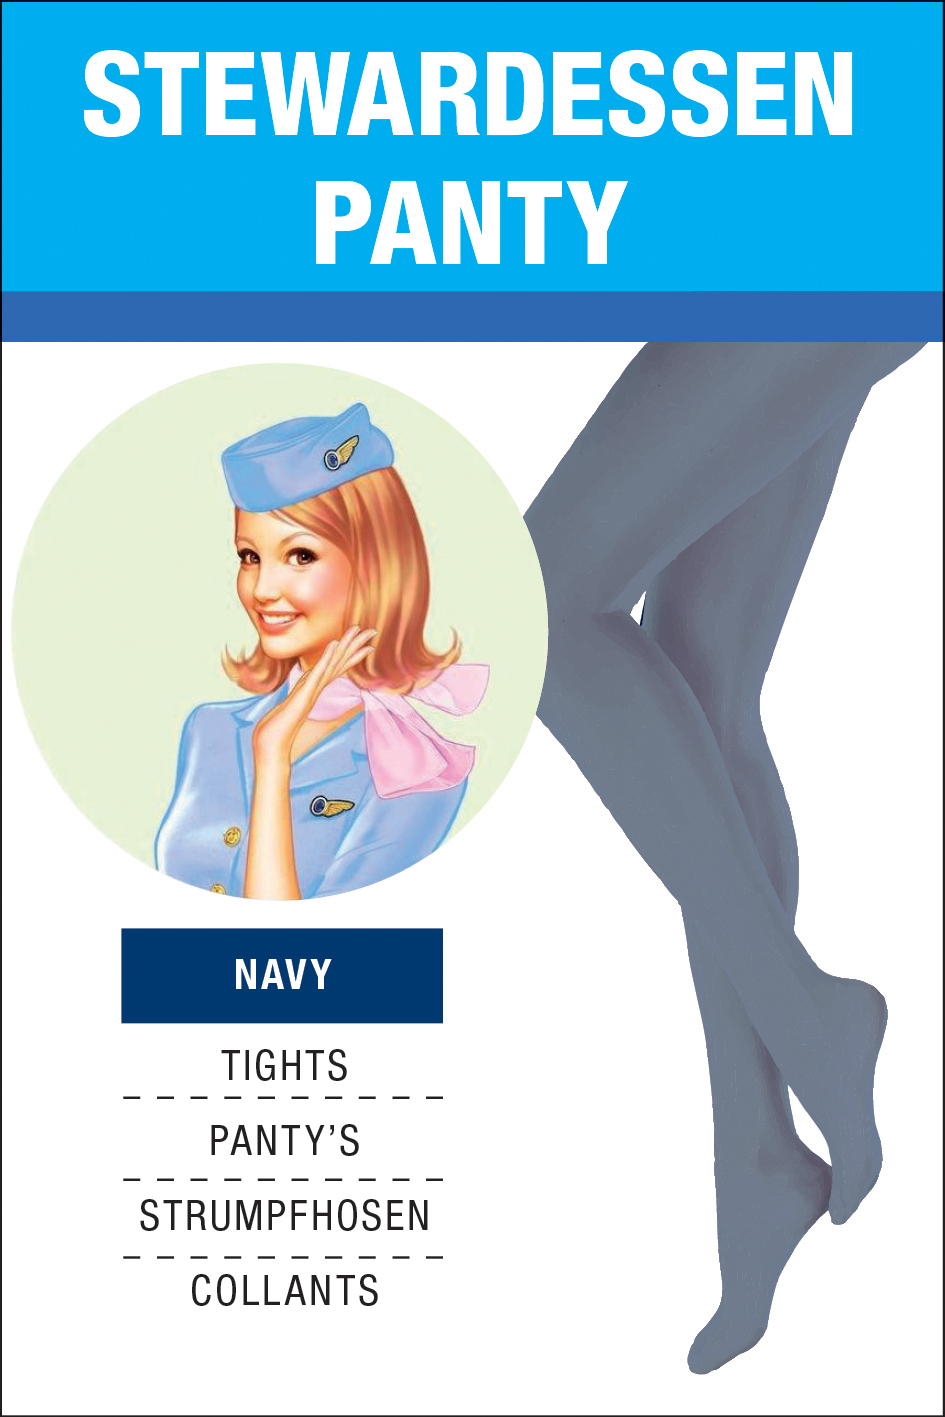 Stewardess_panty_navy